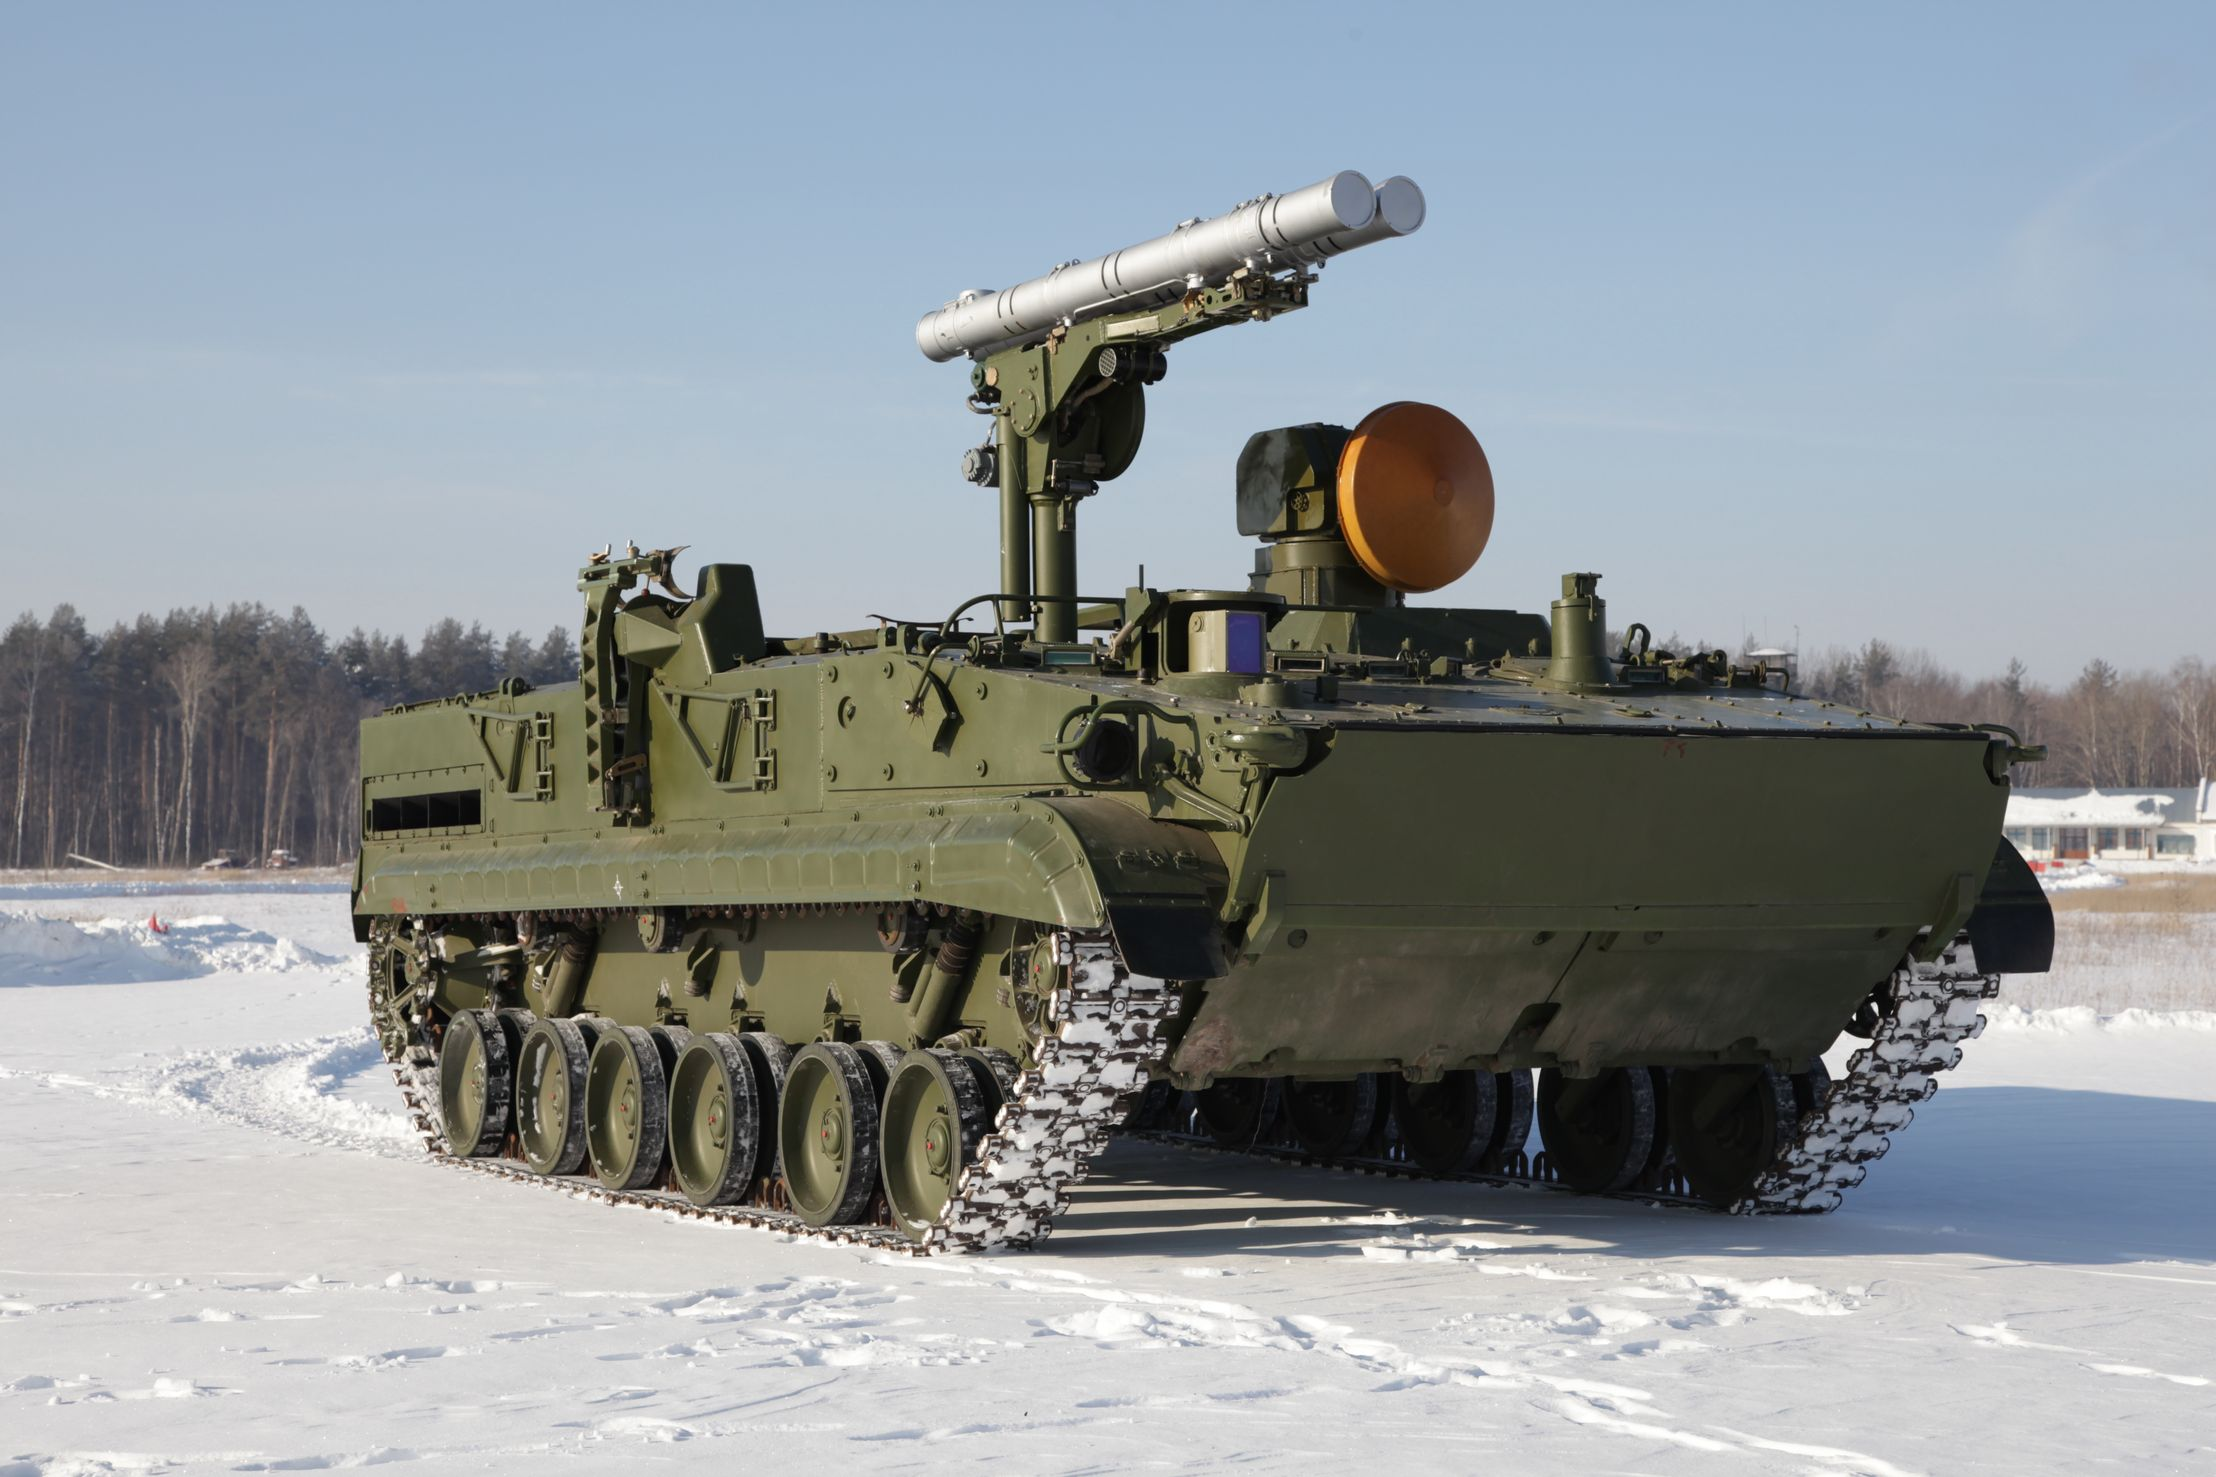 9k123 Khrizantema S All Weather Antitank Missile System